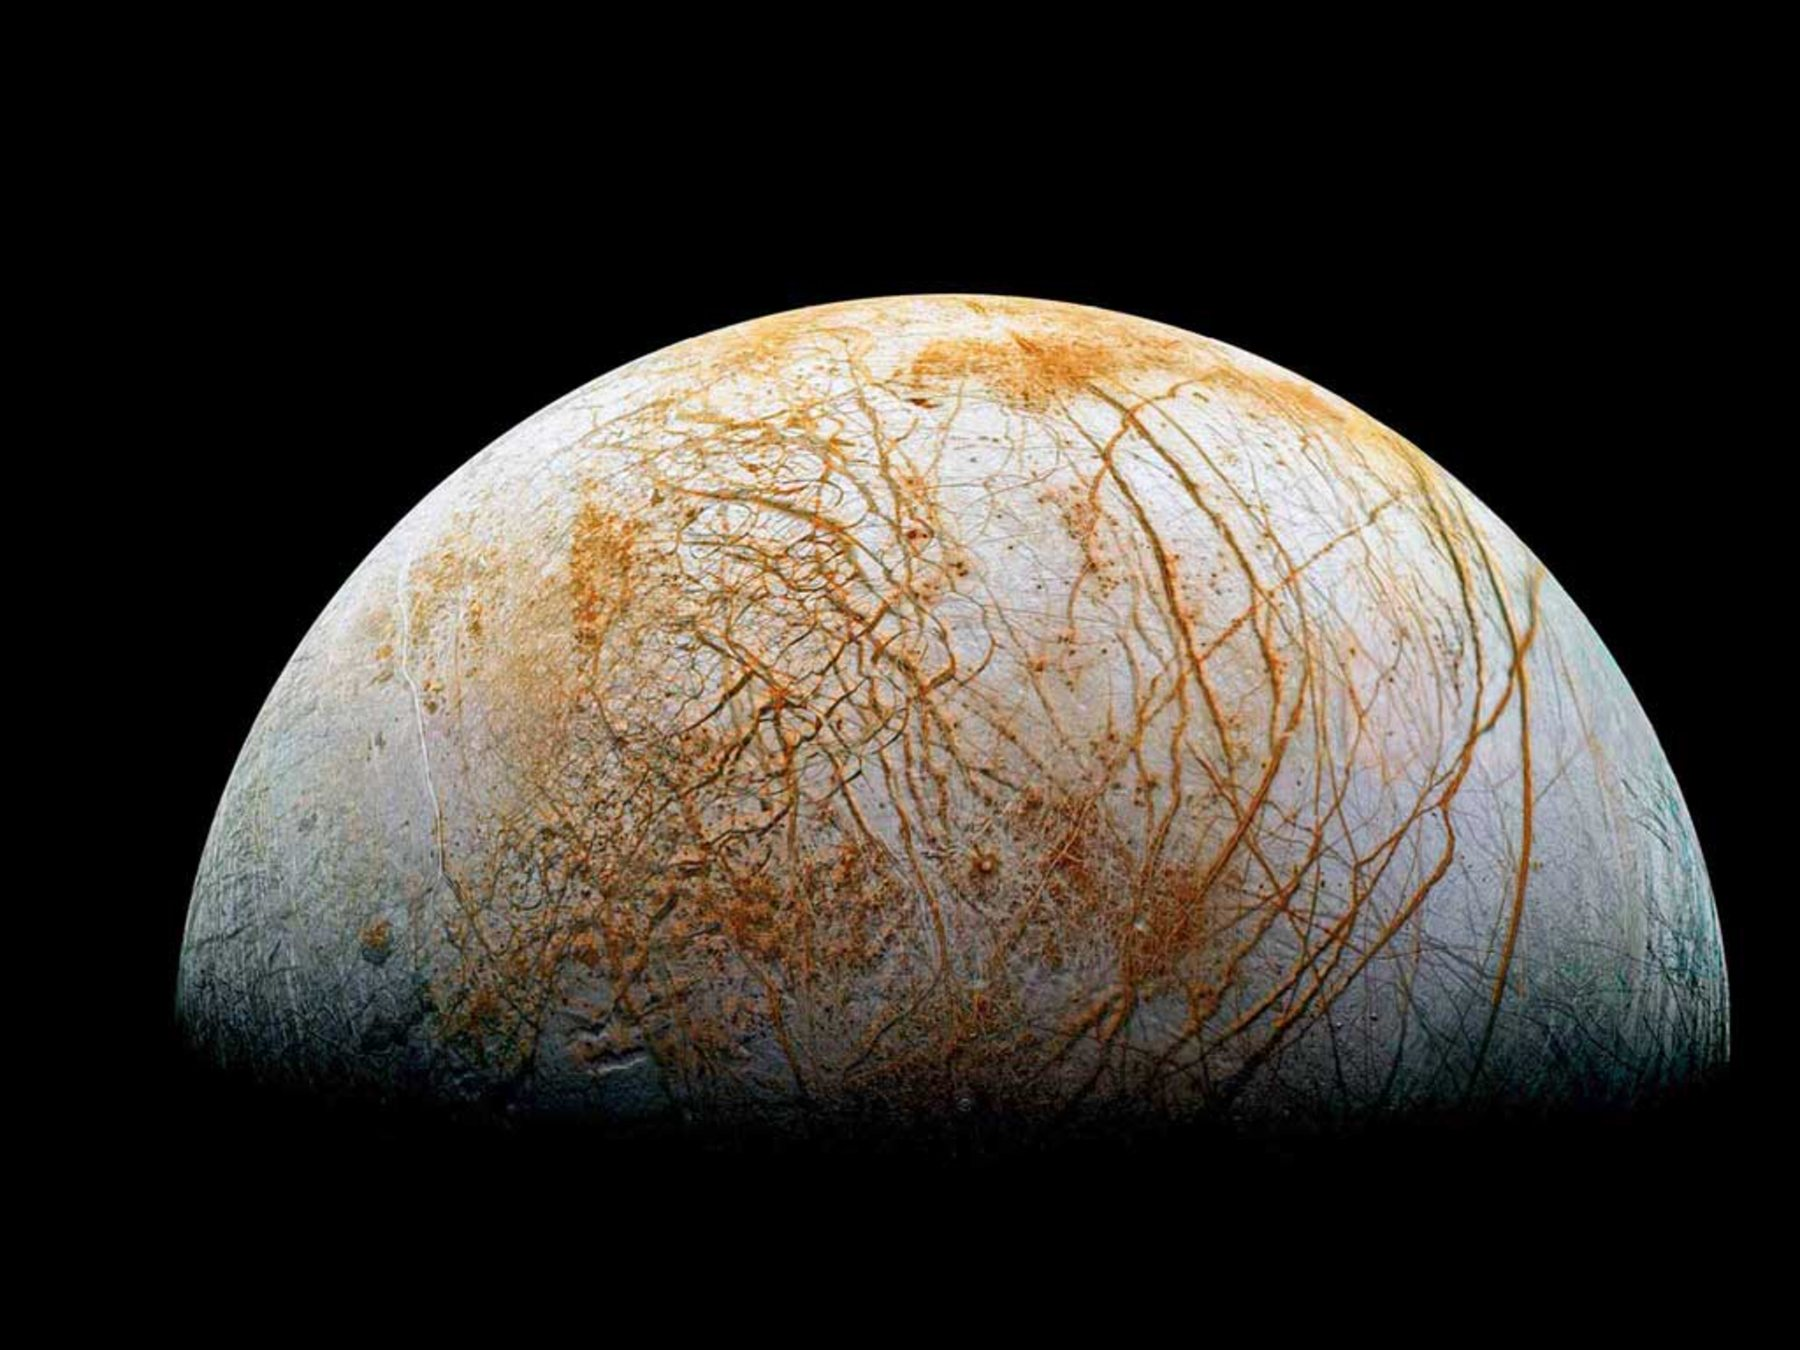 astrobiology. Europa